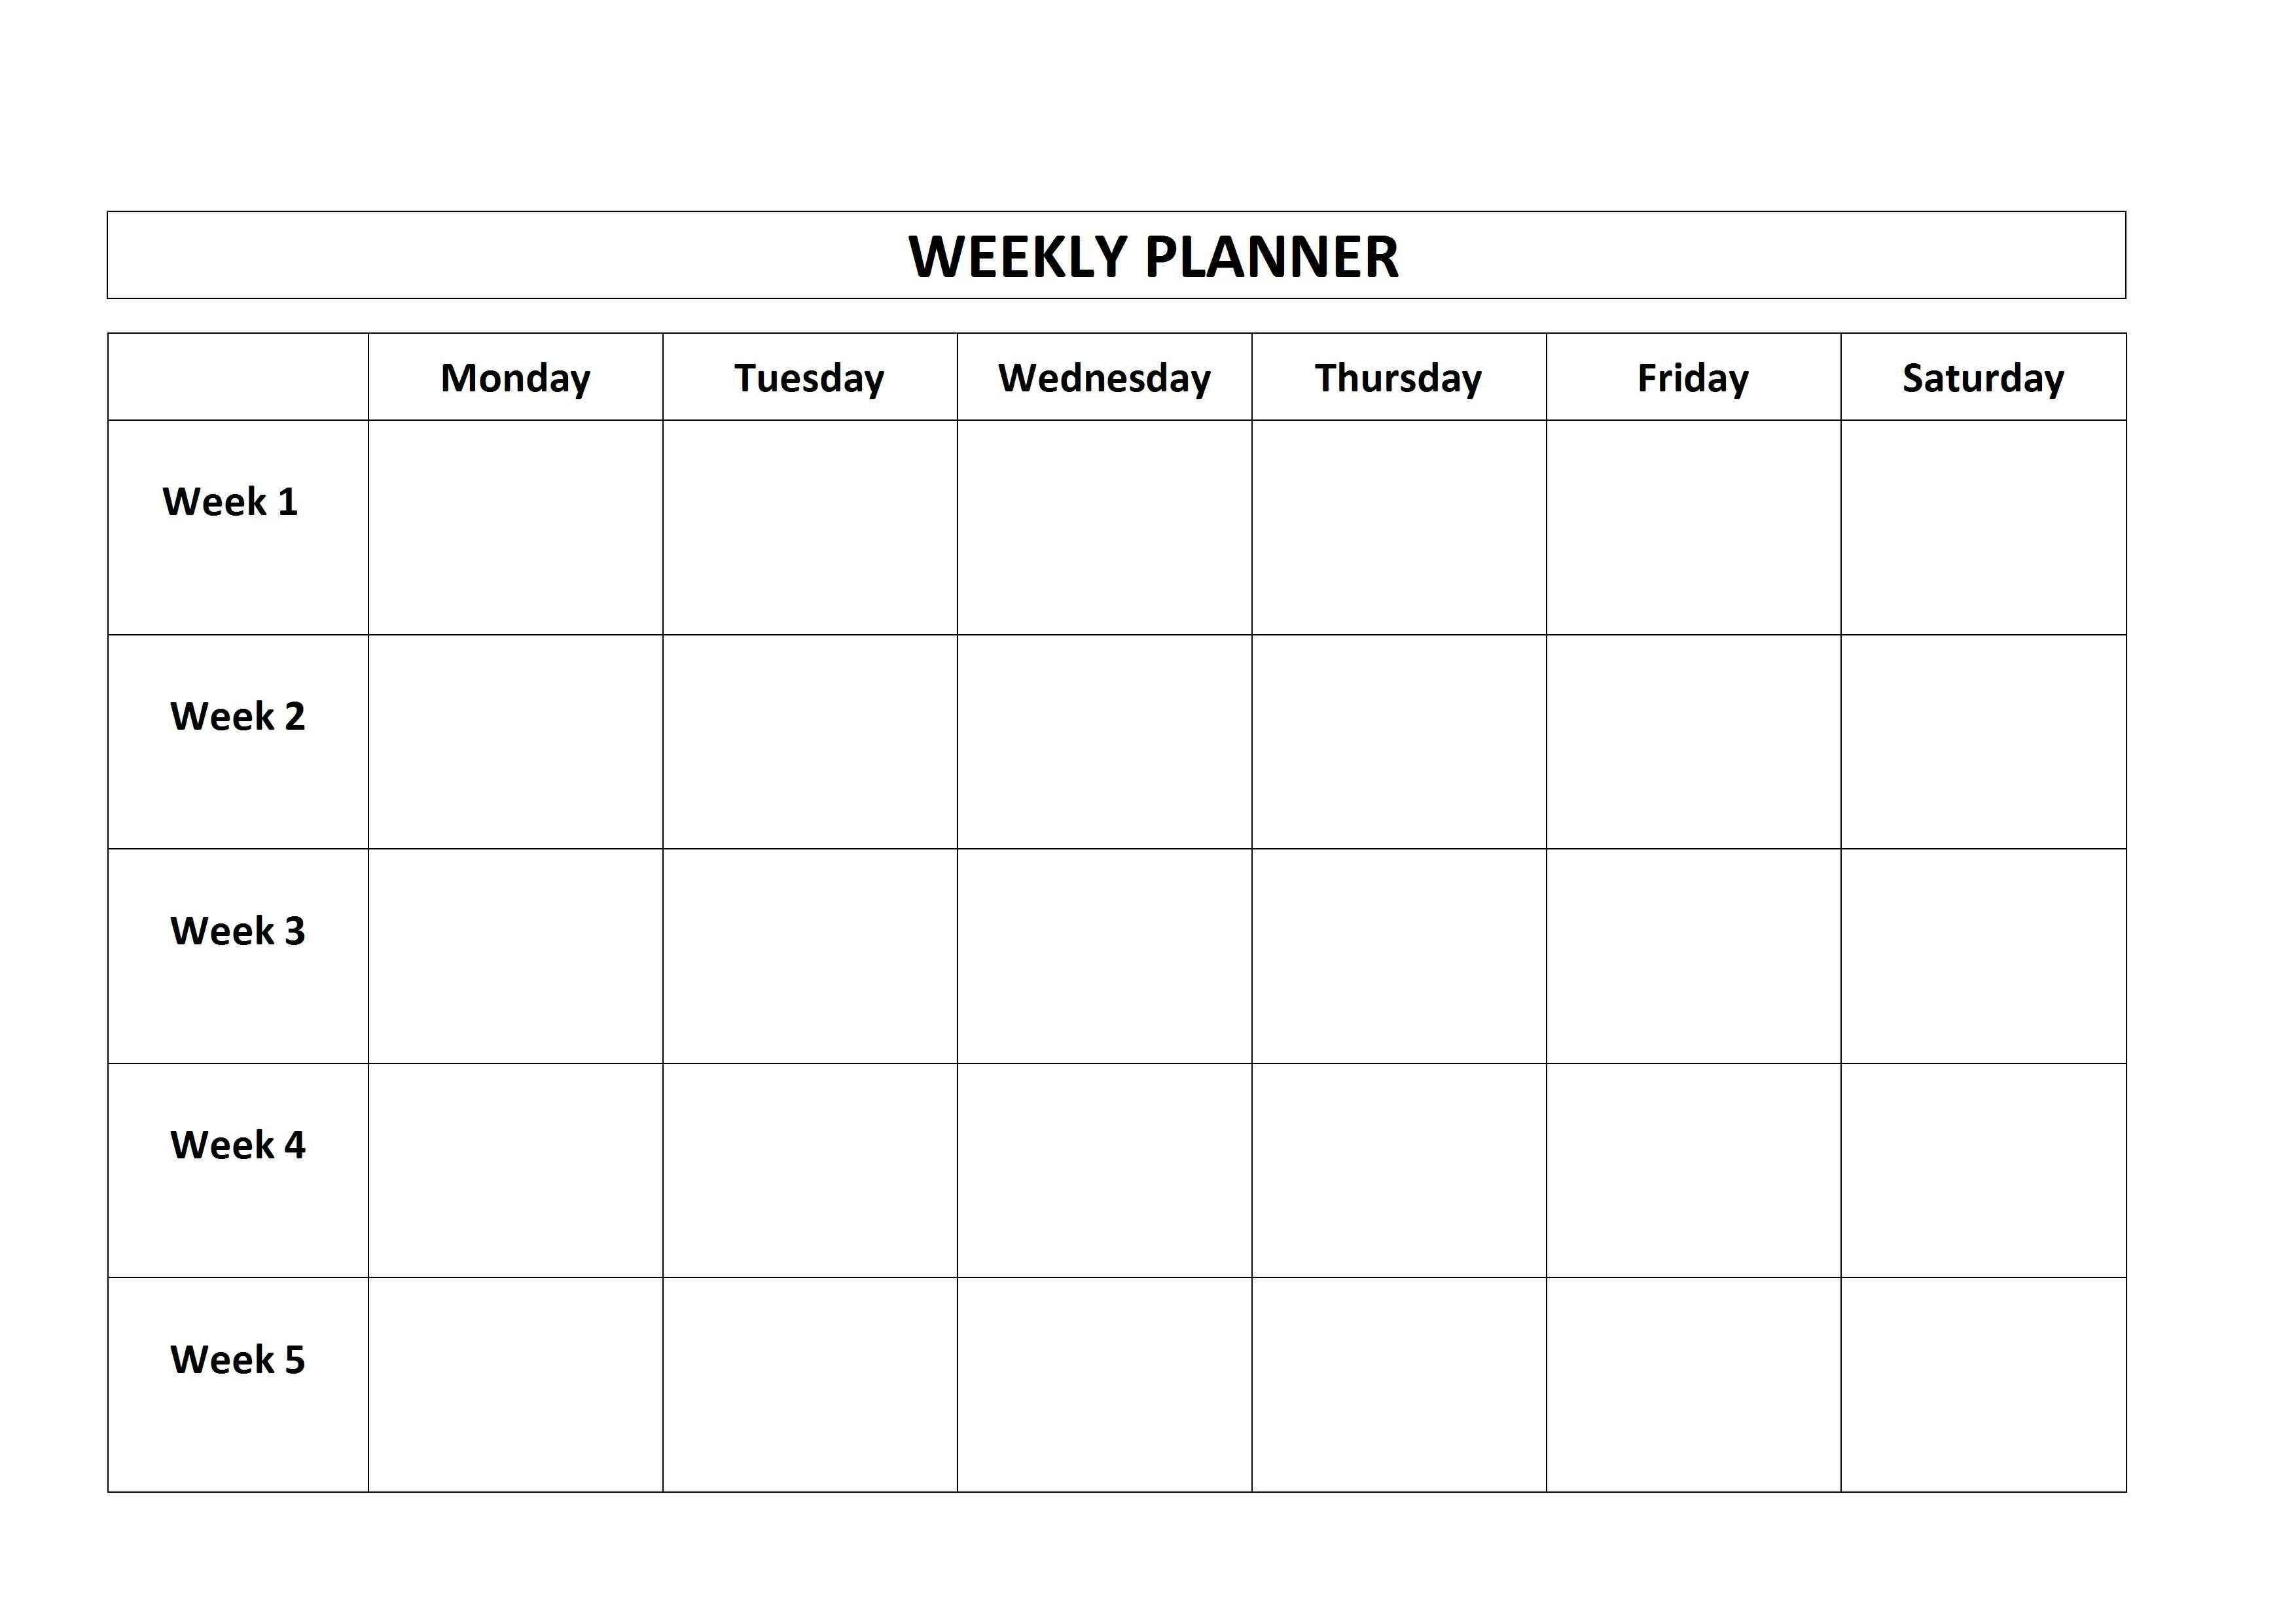 Free Printable Weekly Planner Monday Friday School Calendar Monday To Friday Schedule Template